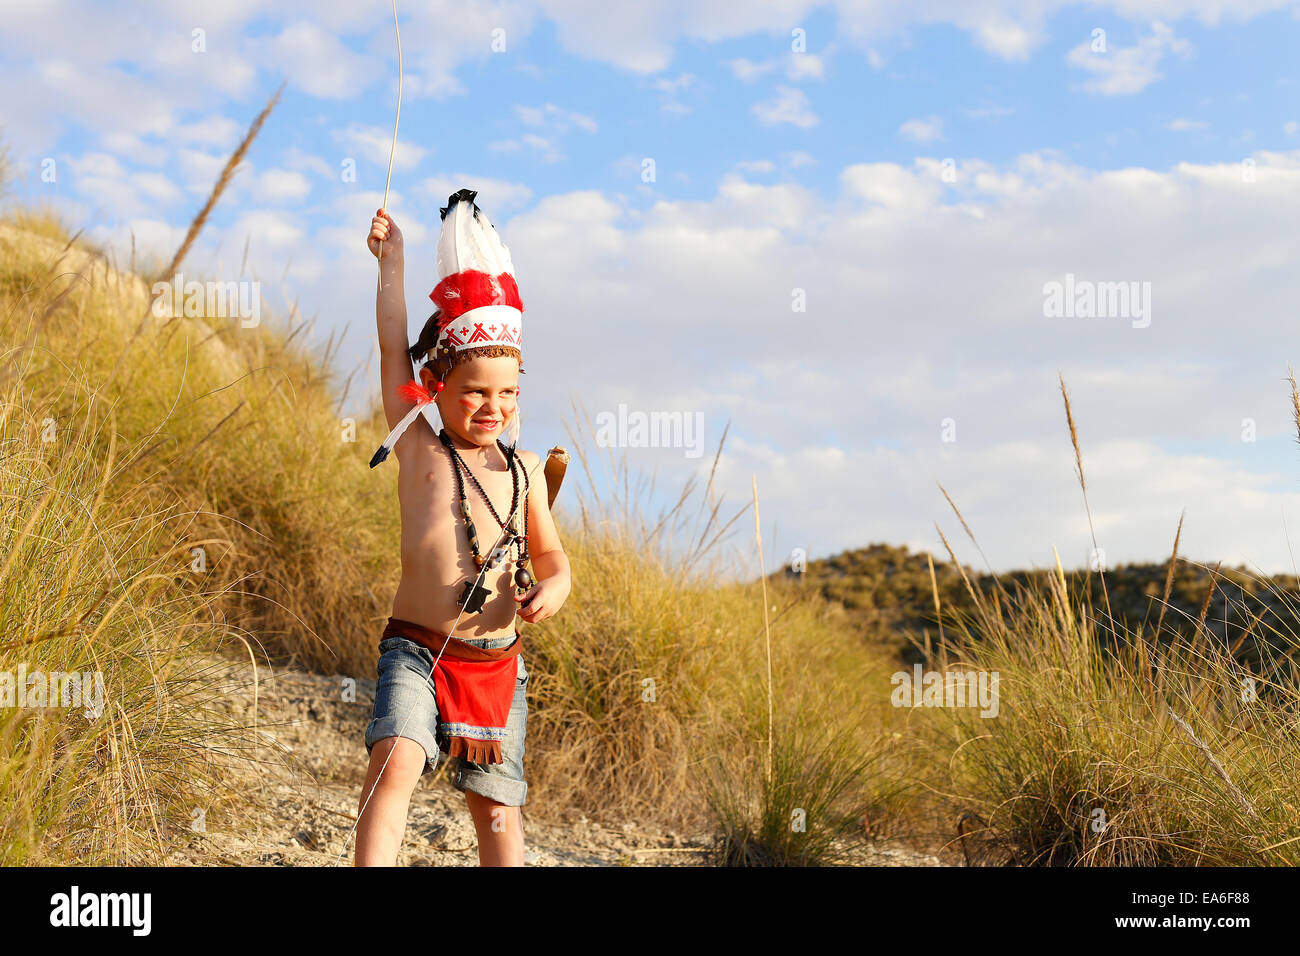 Boy in Indian costume - Stock Image